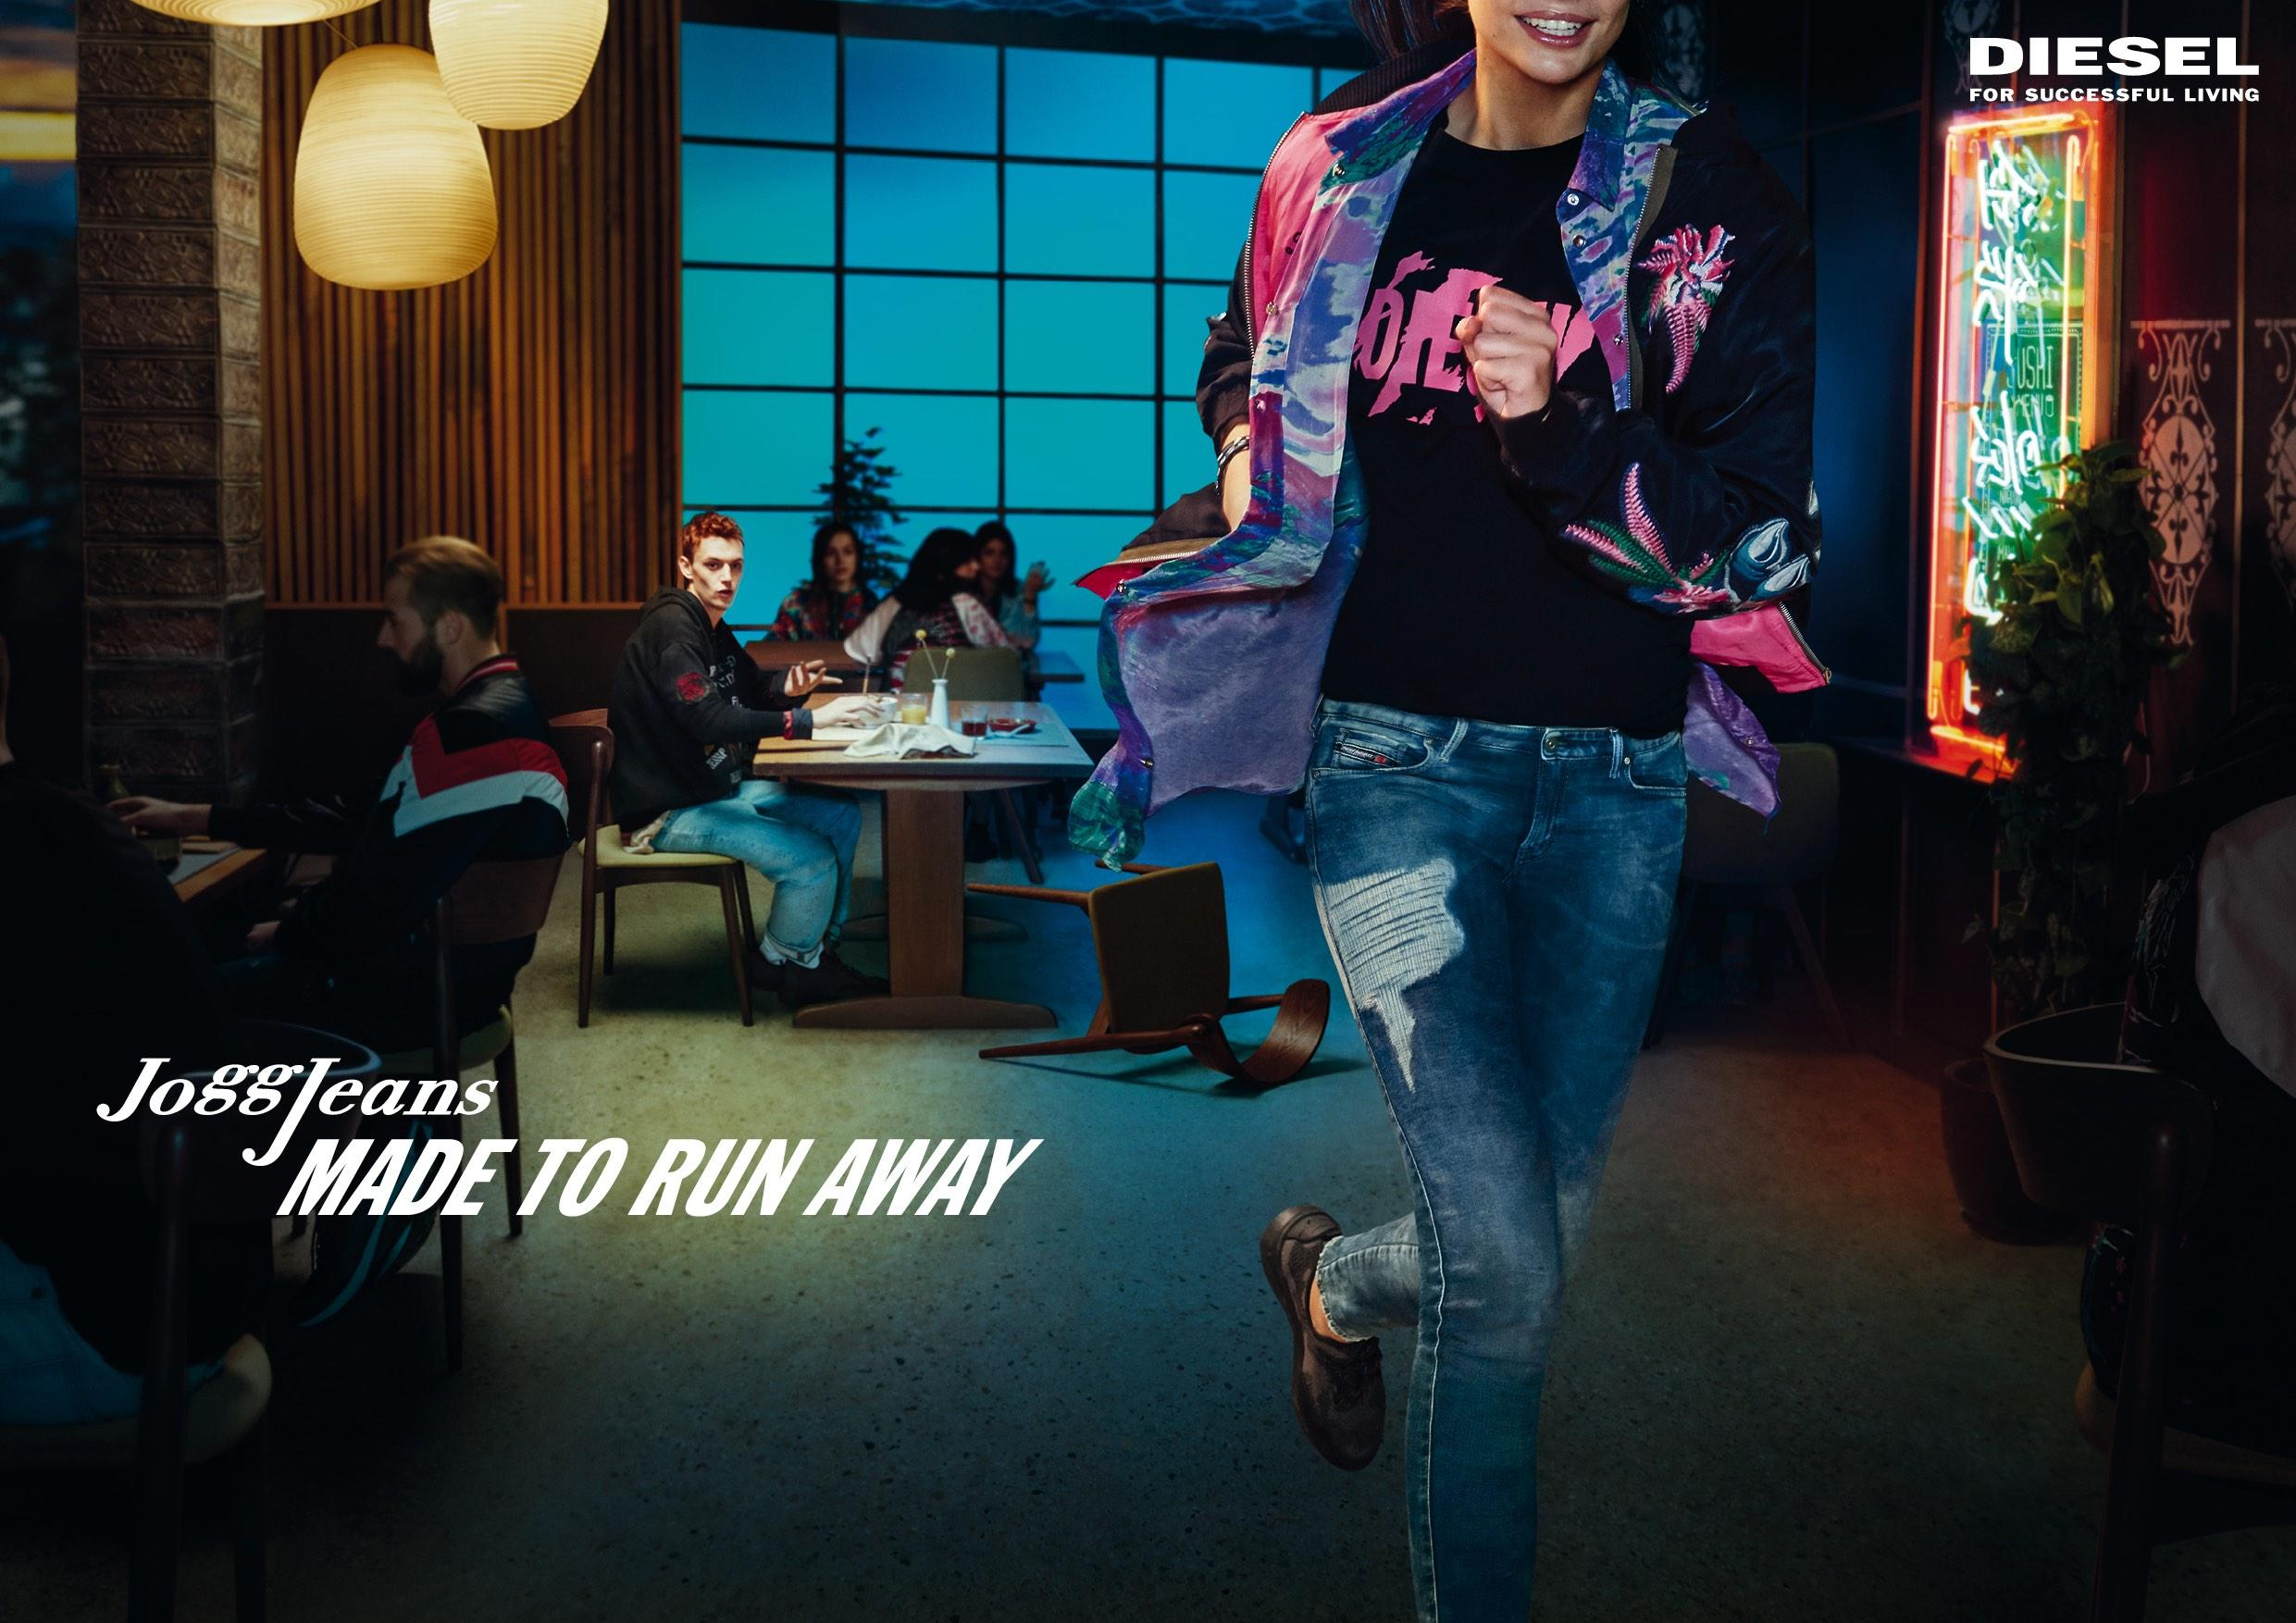 Diesel Print Ad - JoggJeans - Made To Run Away, Female